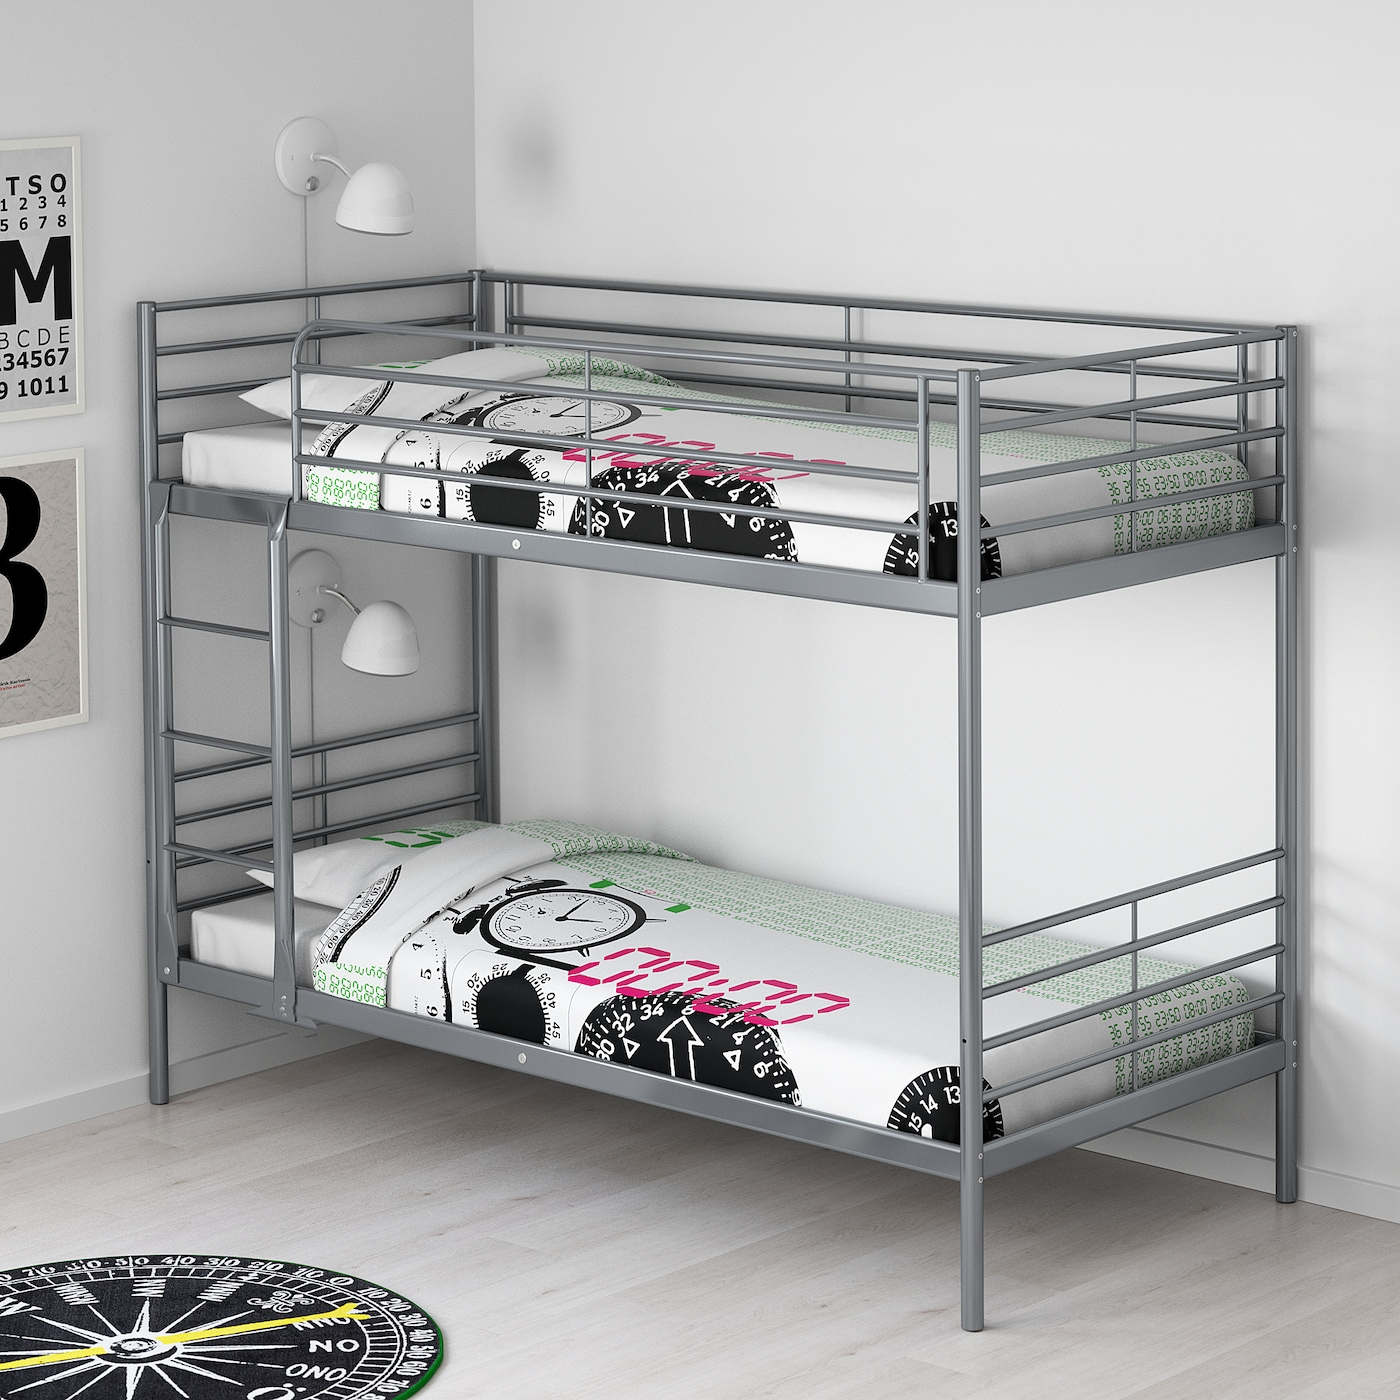 Picture of: Svarta Silver Colour Bunk Bed Frame 90×200 Cm Ikea